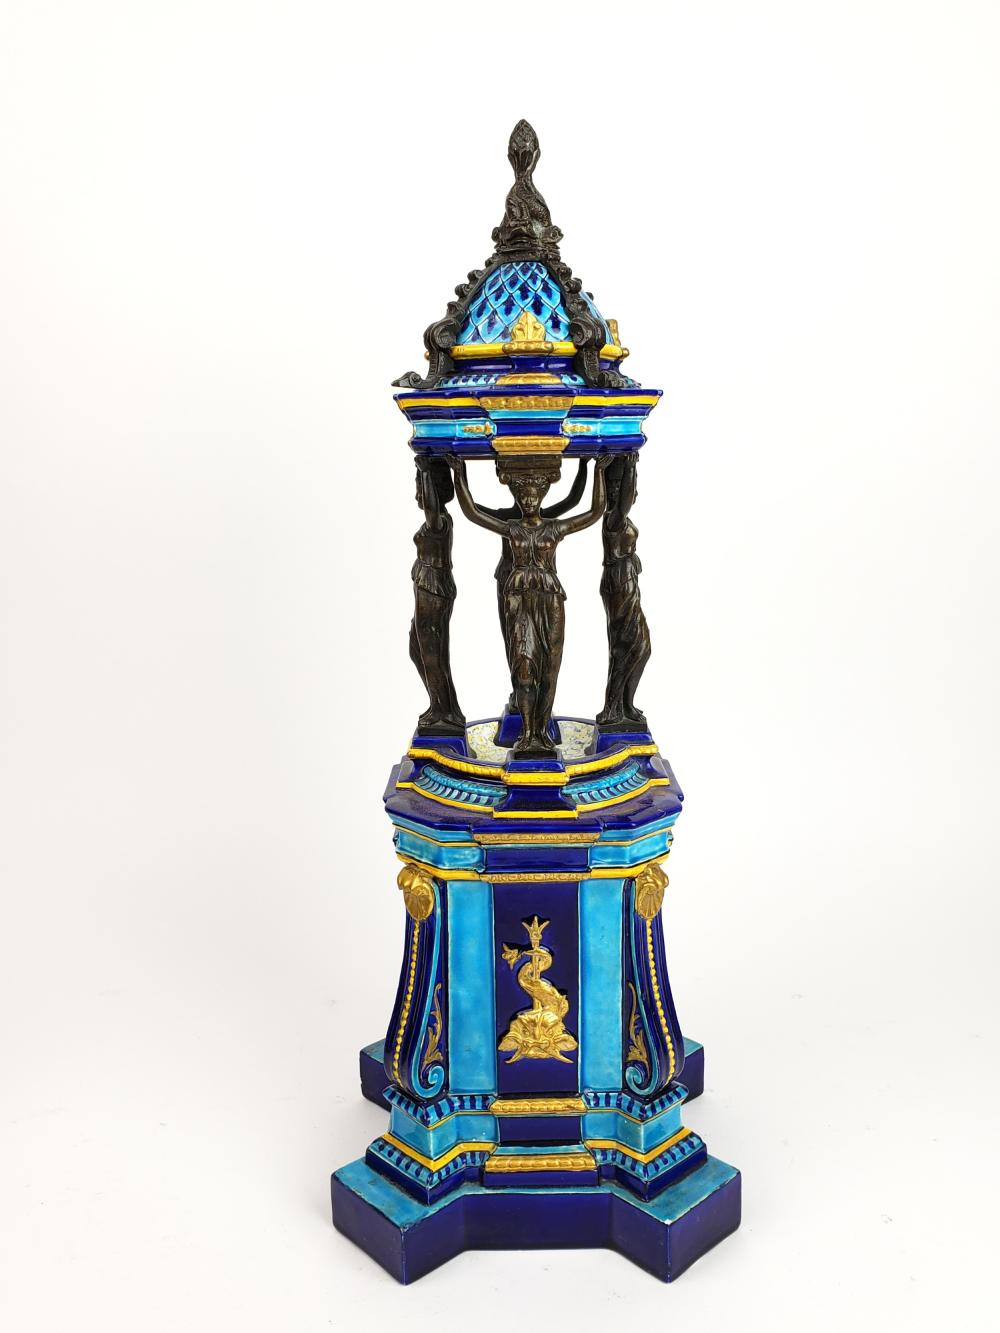 A French Figural Porcelain & Patinated Bronze Centerpiece